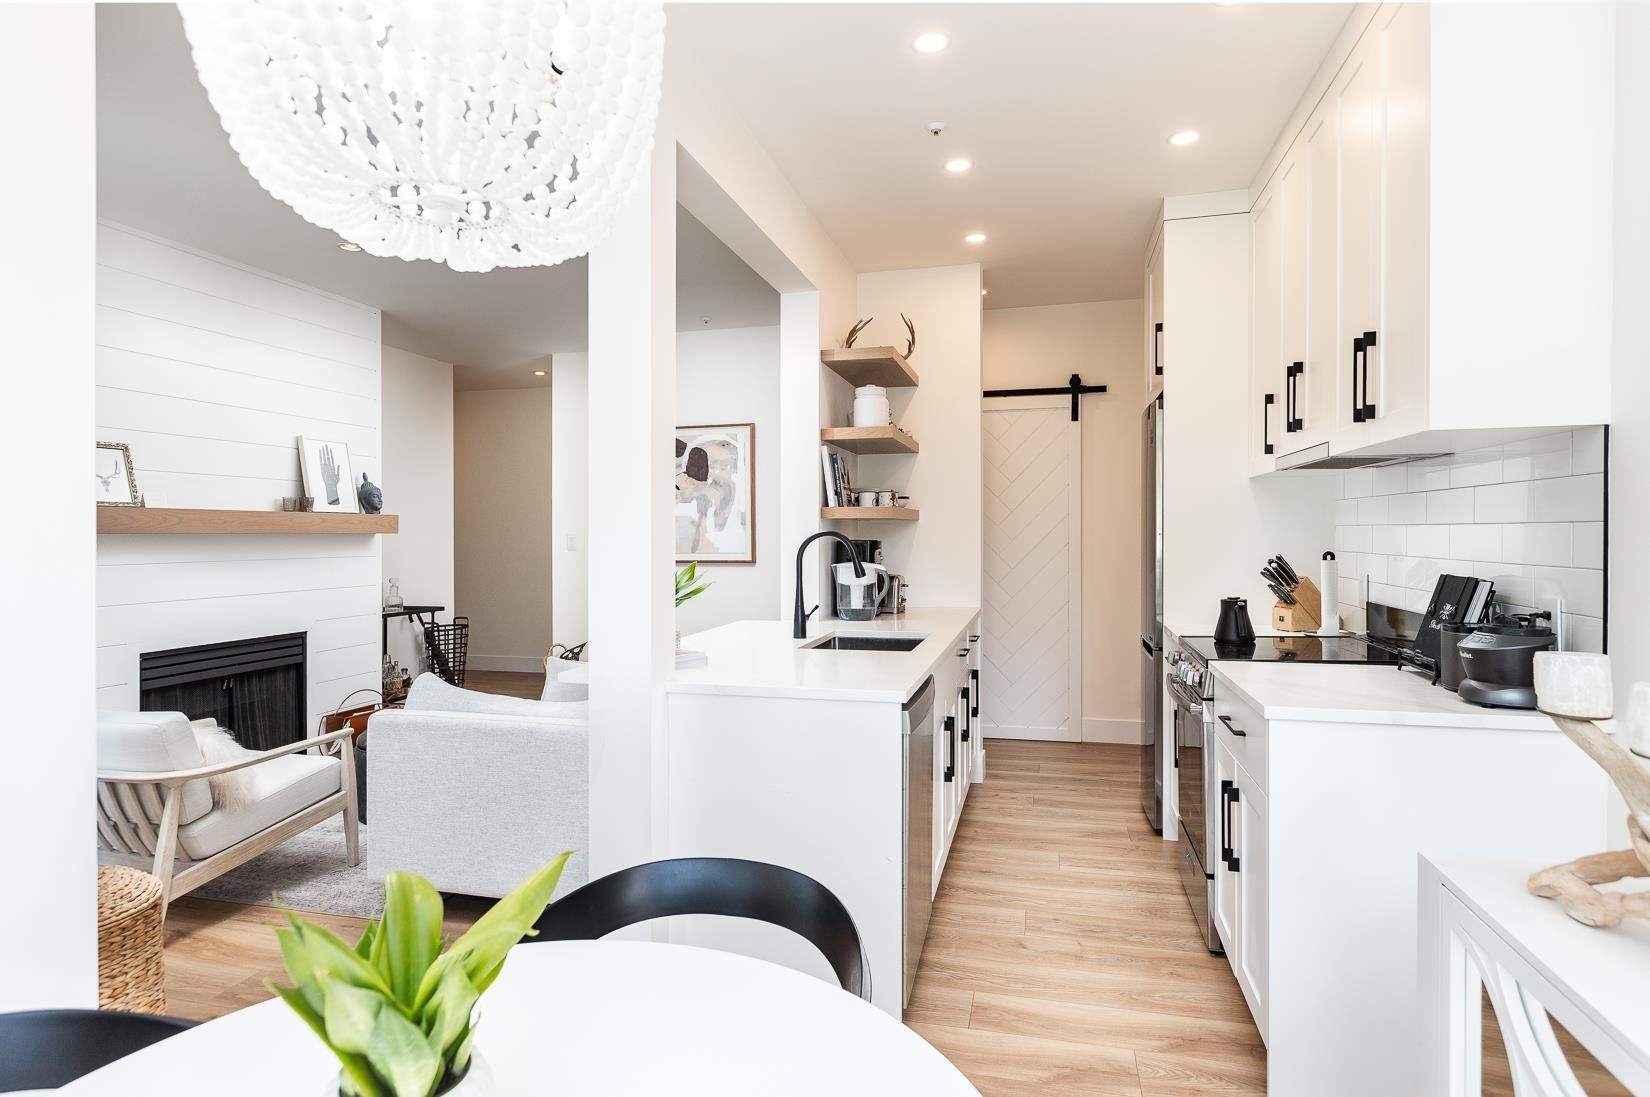 Main Photo: PH7 511 W 7TH Avenue in Vancouver: Fairview VW Condo for sale (Vancouver West)  : MLS®# R2615810